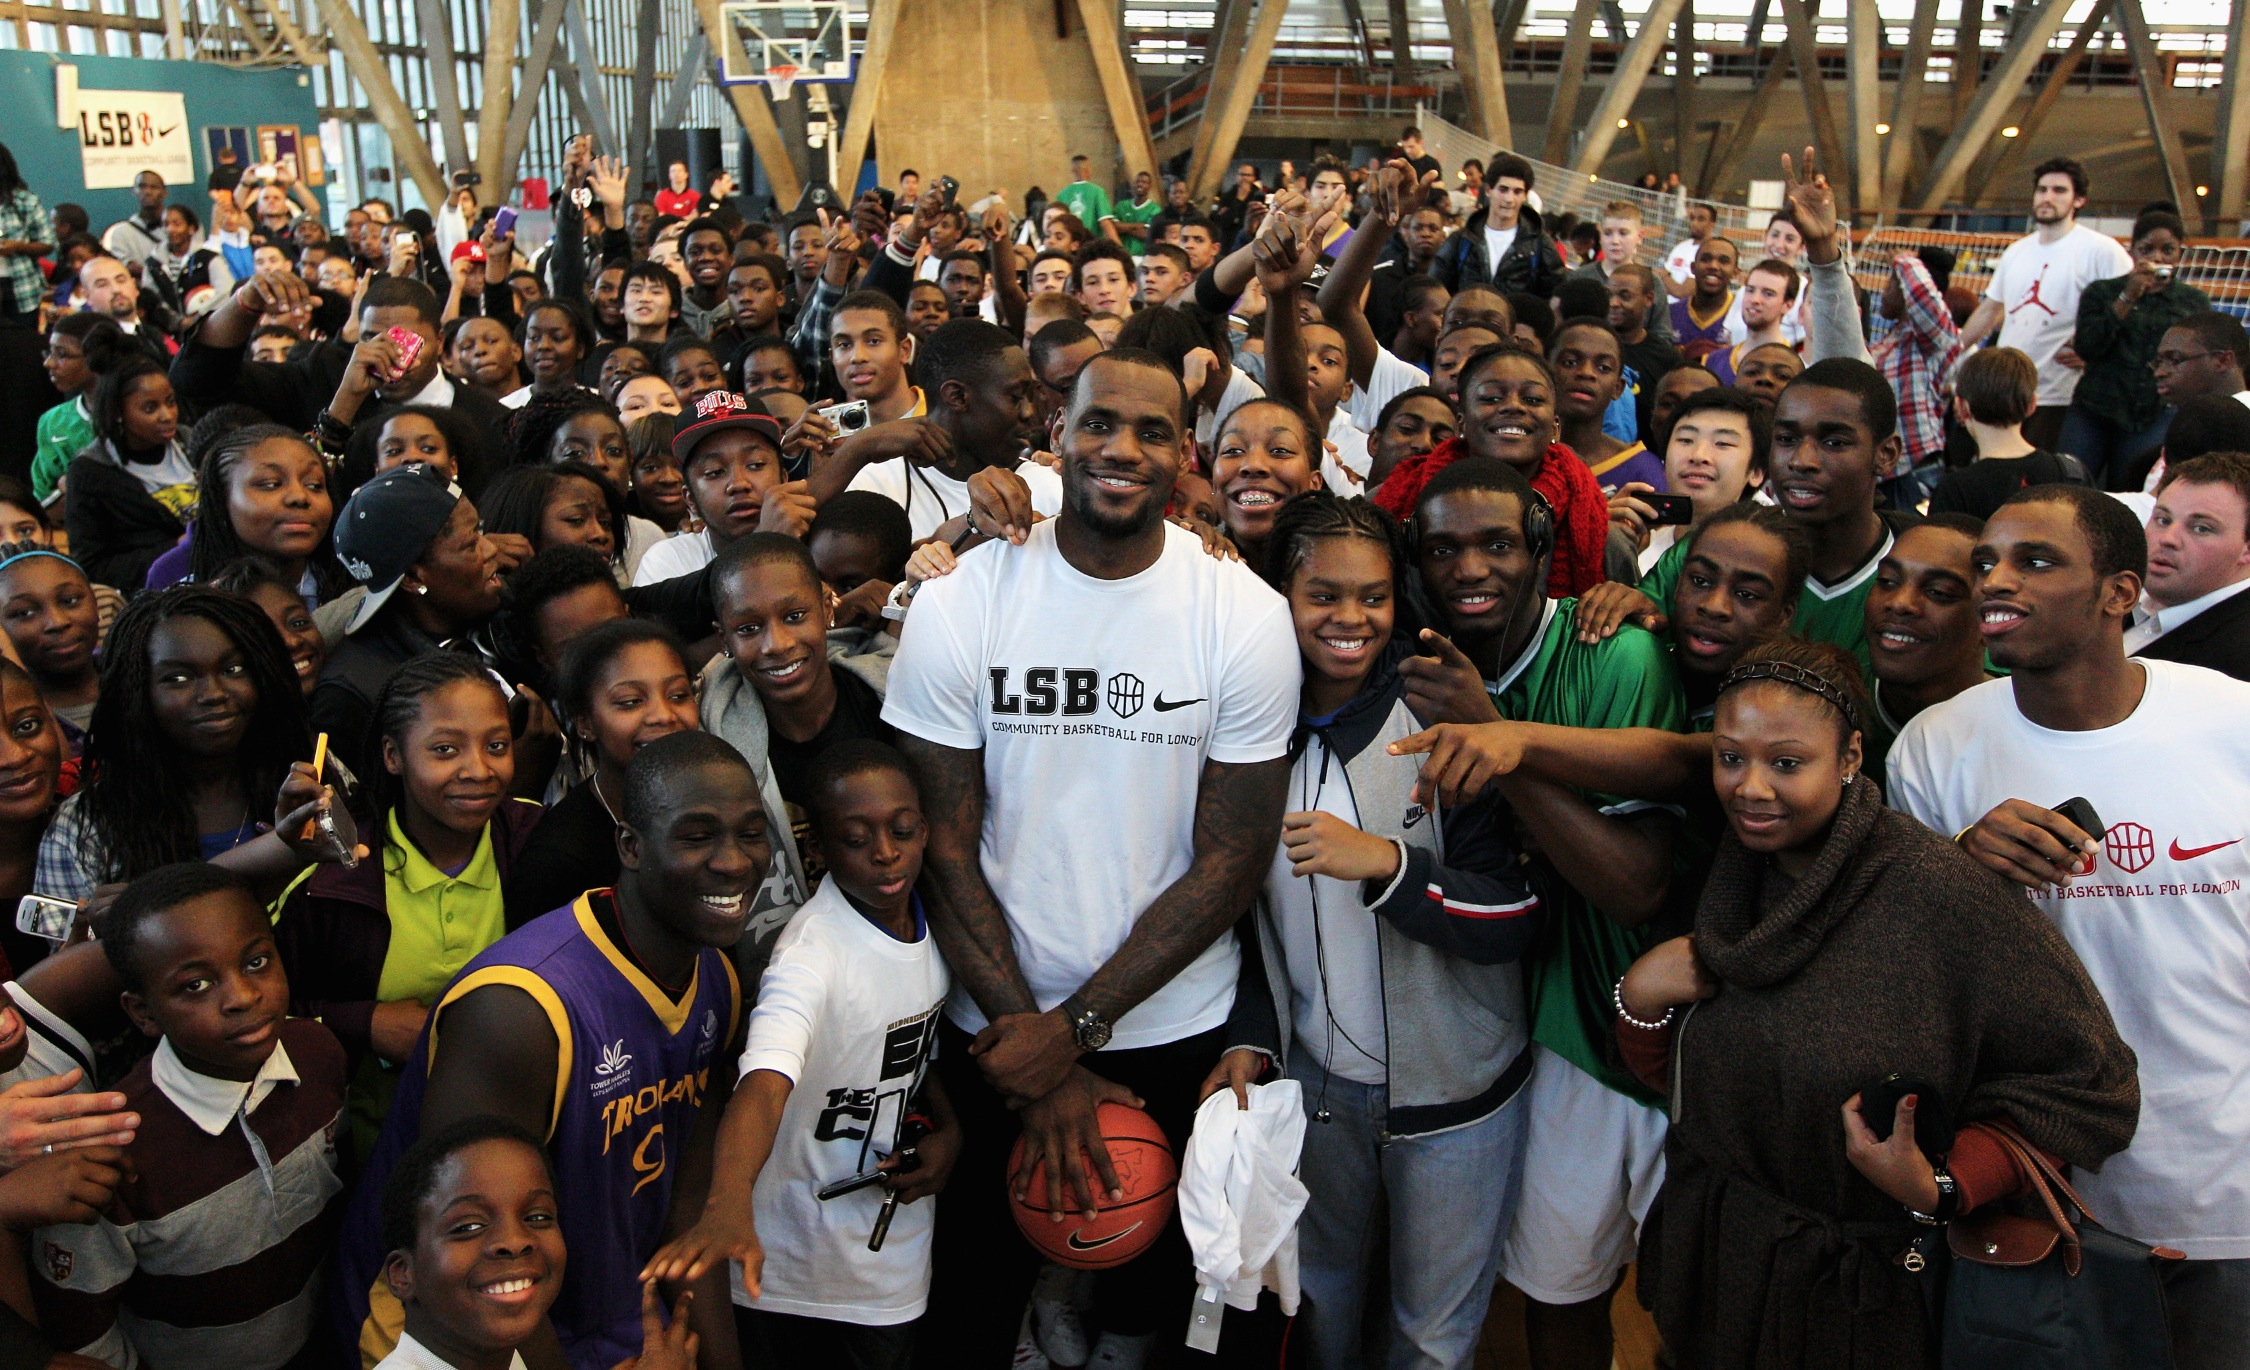 USA TODAY Influencers: LeBron James